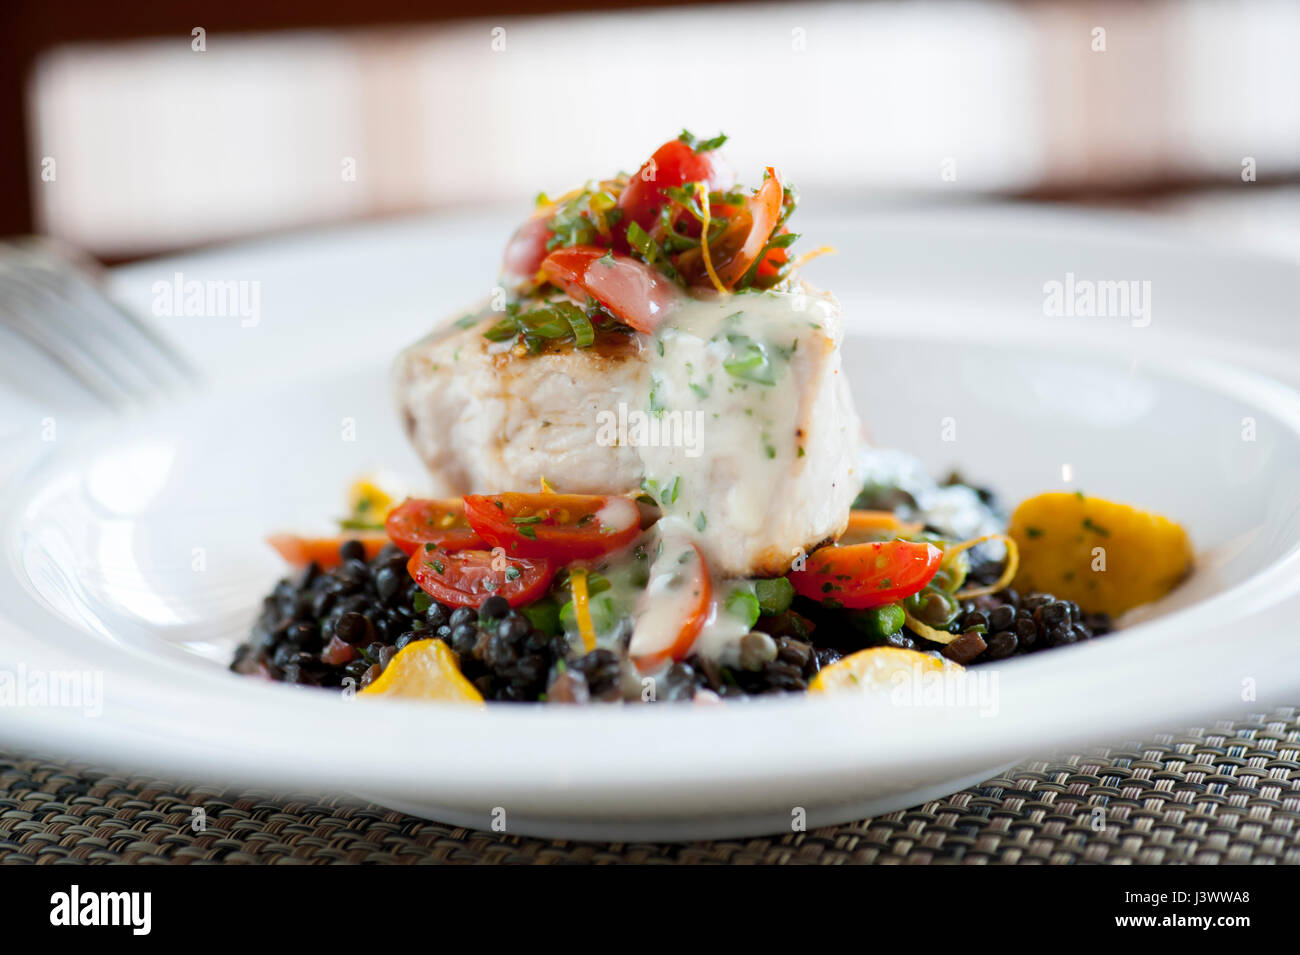 USA Food Swordfish steak on a bed of lentils at the Waypoint Seafood and Grill Williamsburg Virginia VA - Stock Image